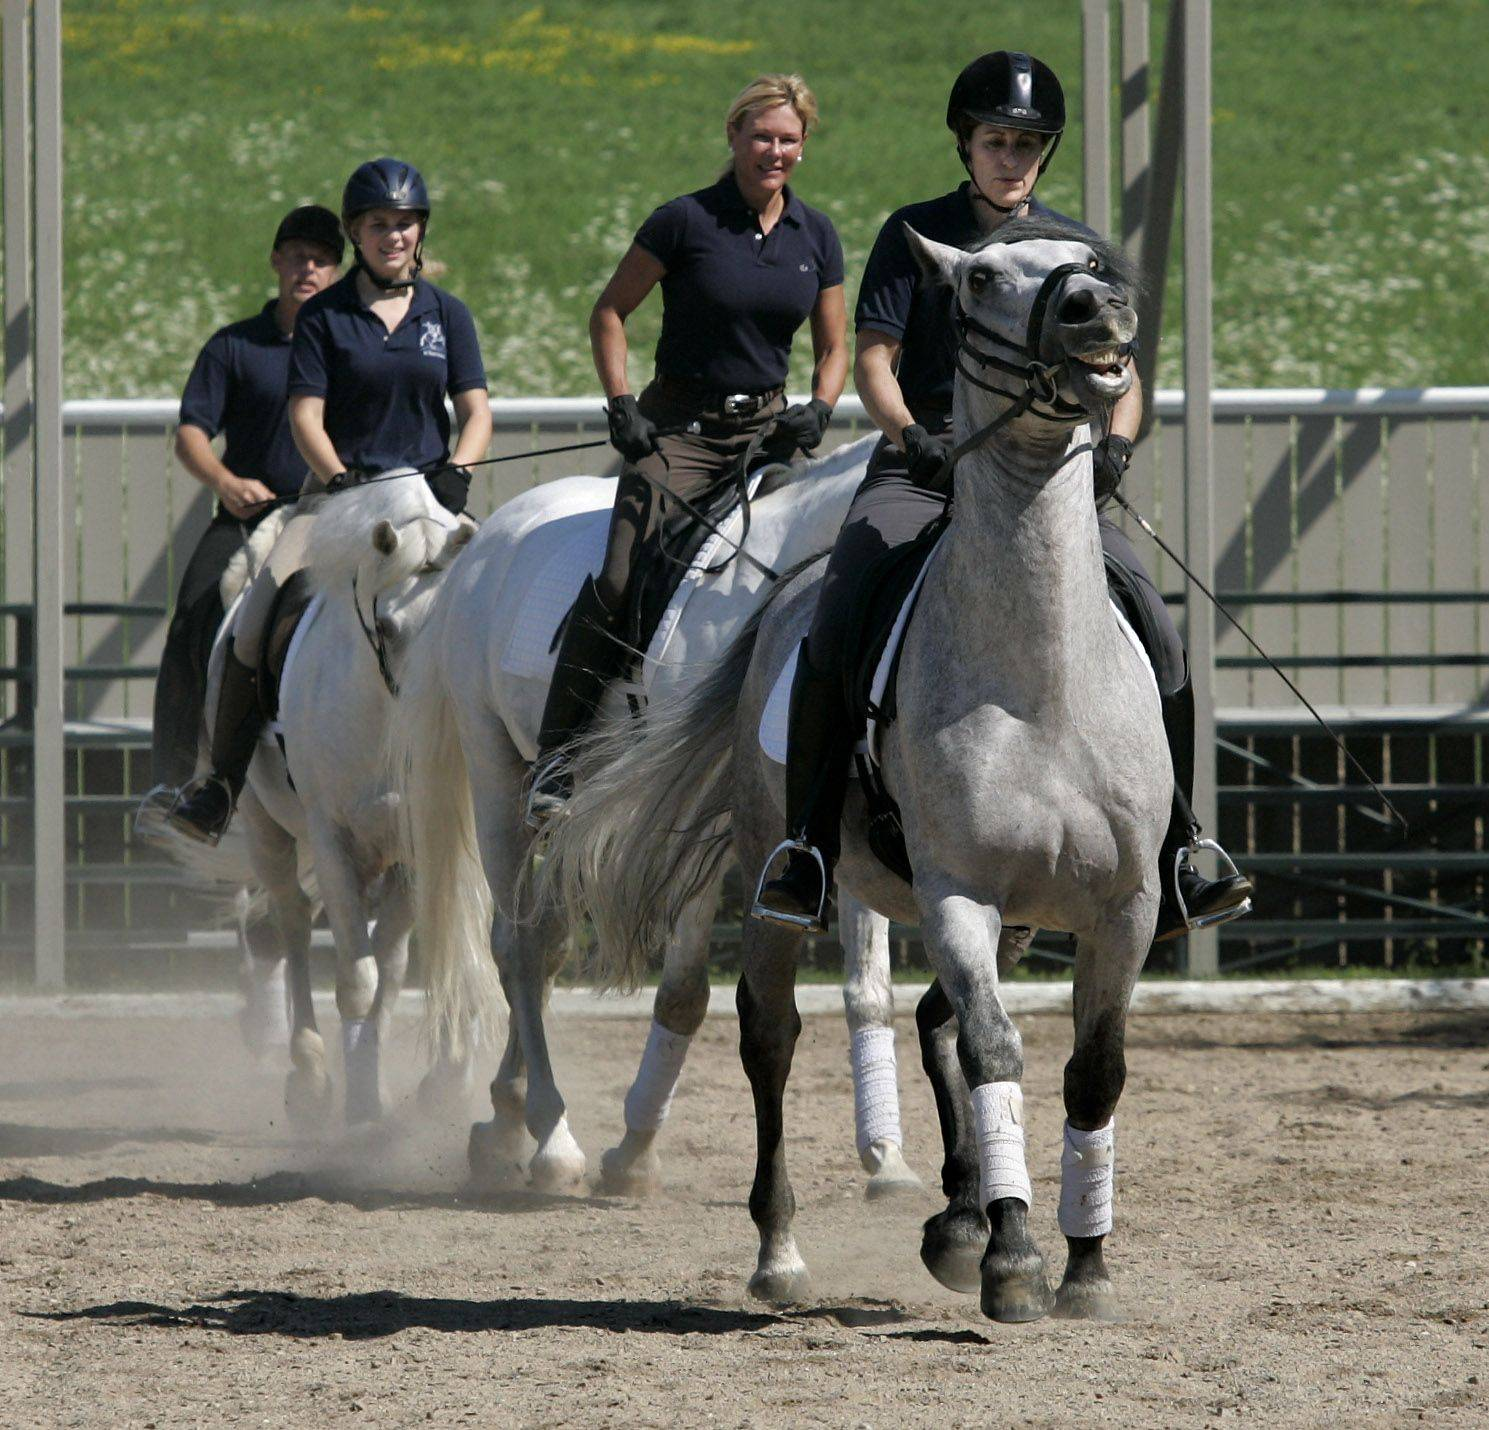 Eliza Ardizzone on five-year-old Conversano Mima Barbara leads a group of the young Lipizzan stallions in training as they practice the Quadrille in the performance ring.